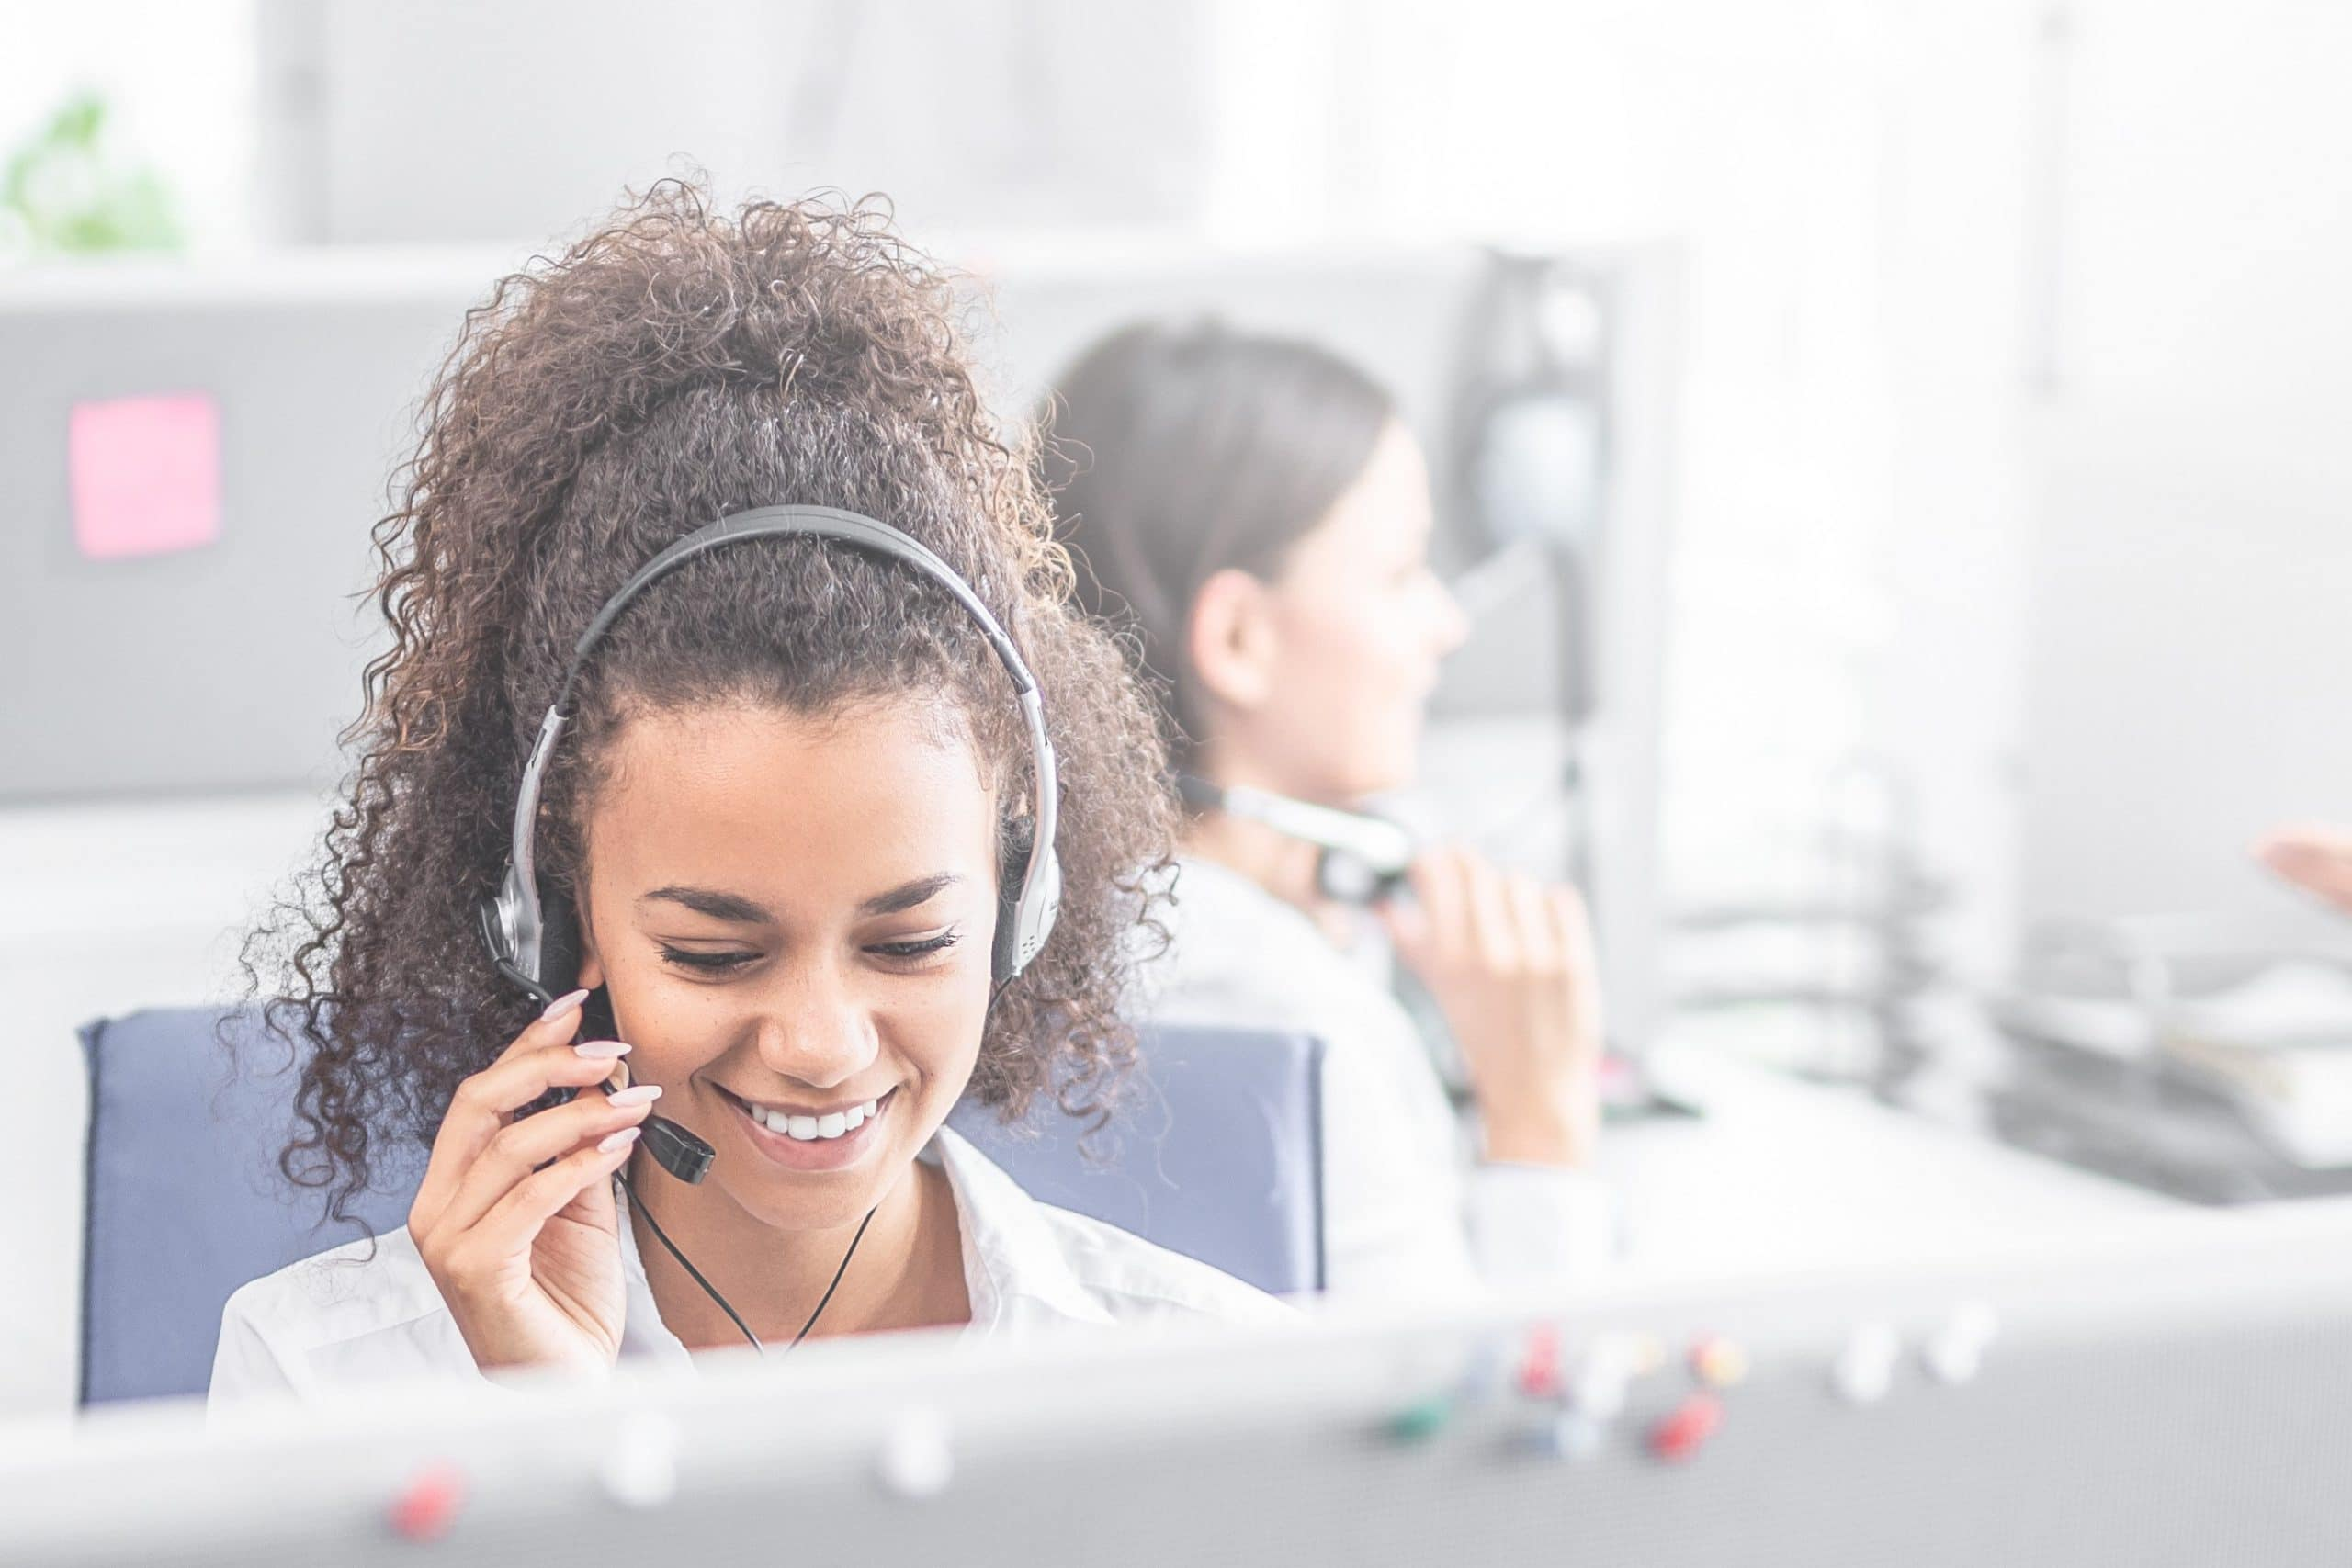 A frontline employee takes a call on a headset